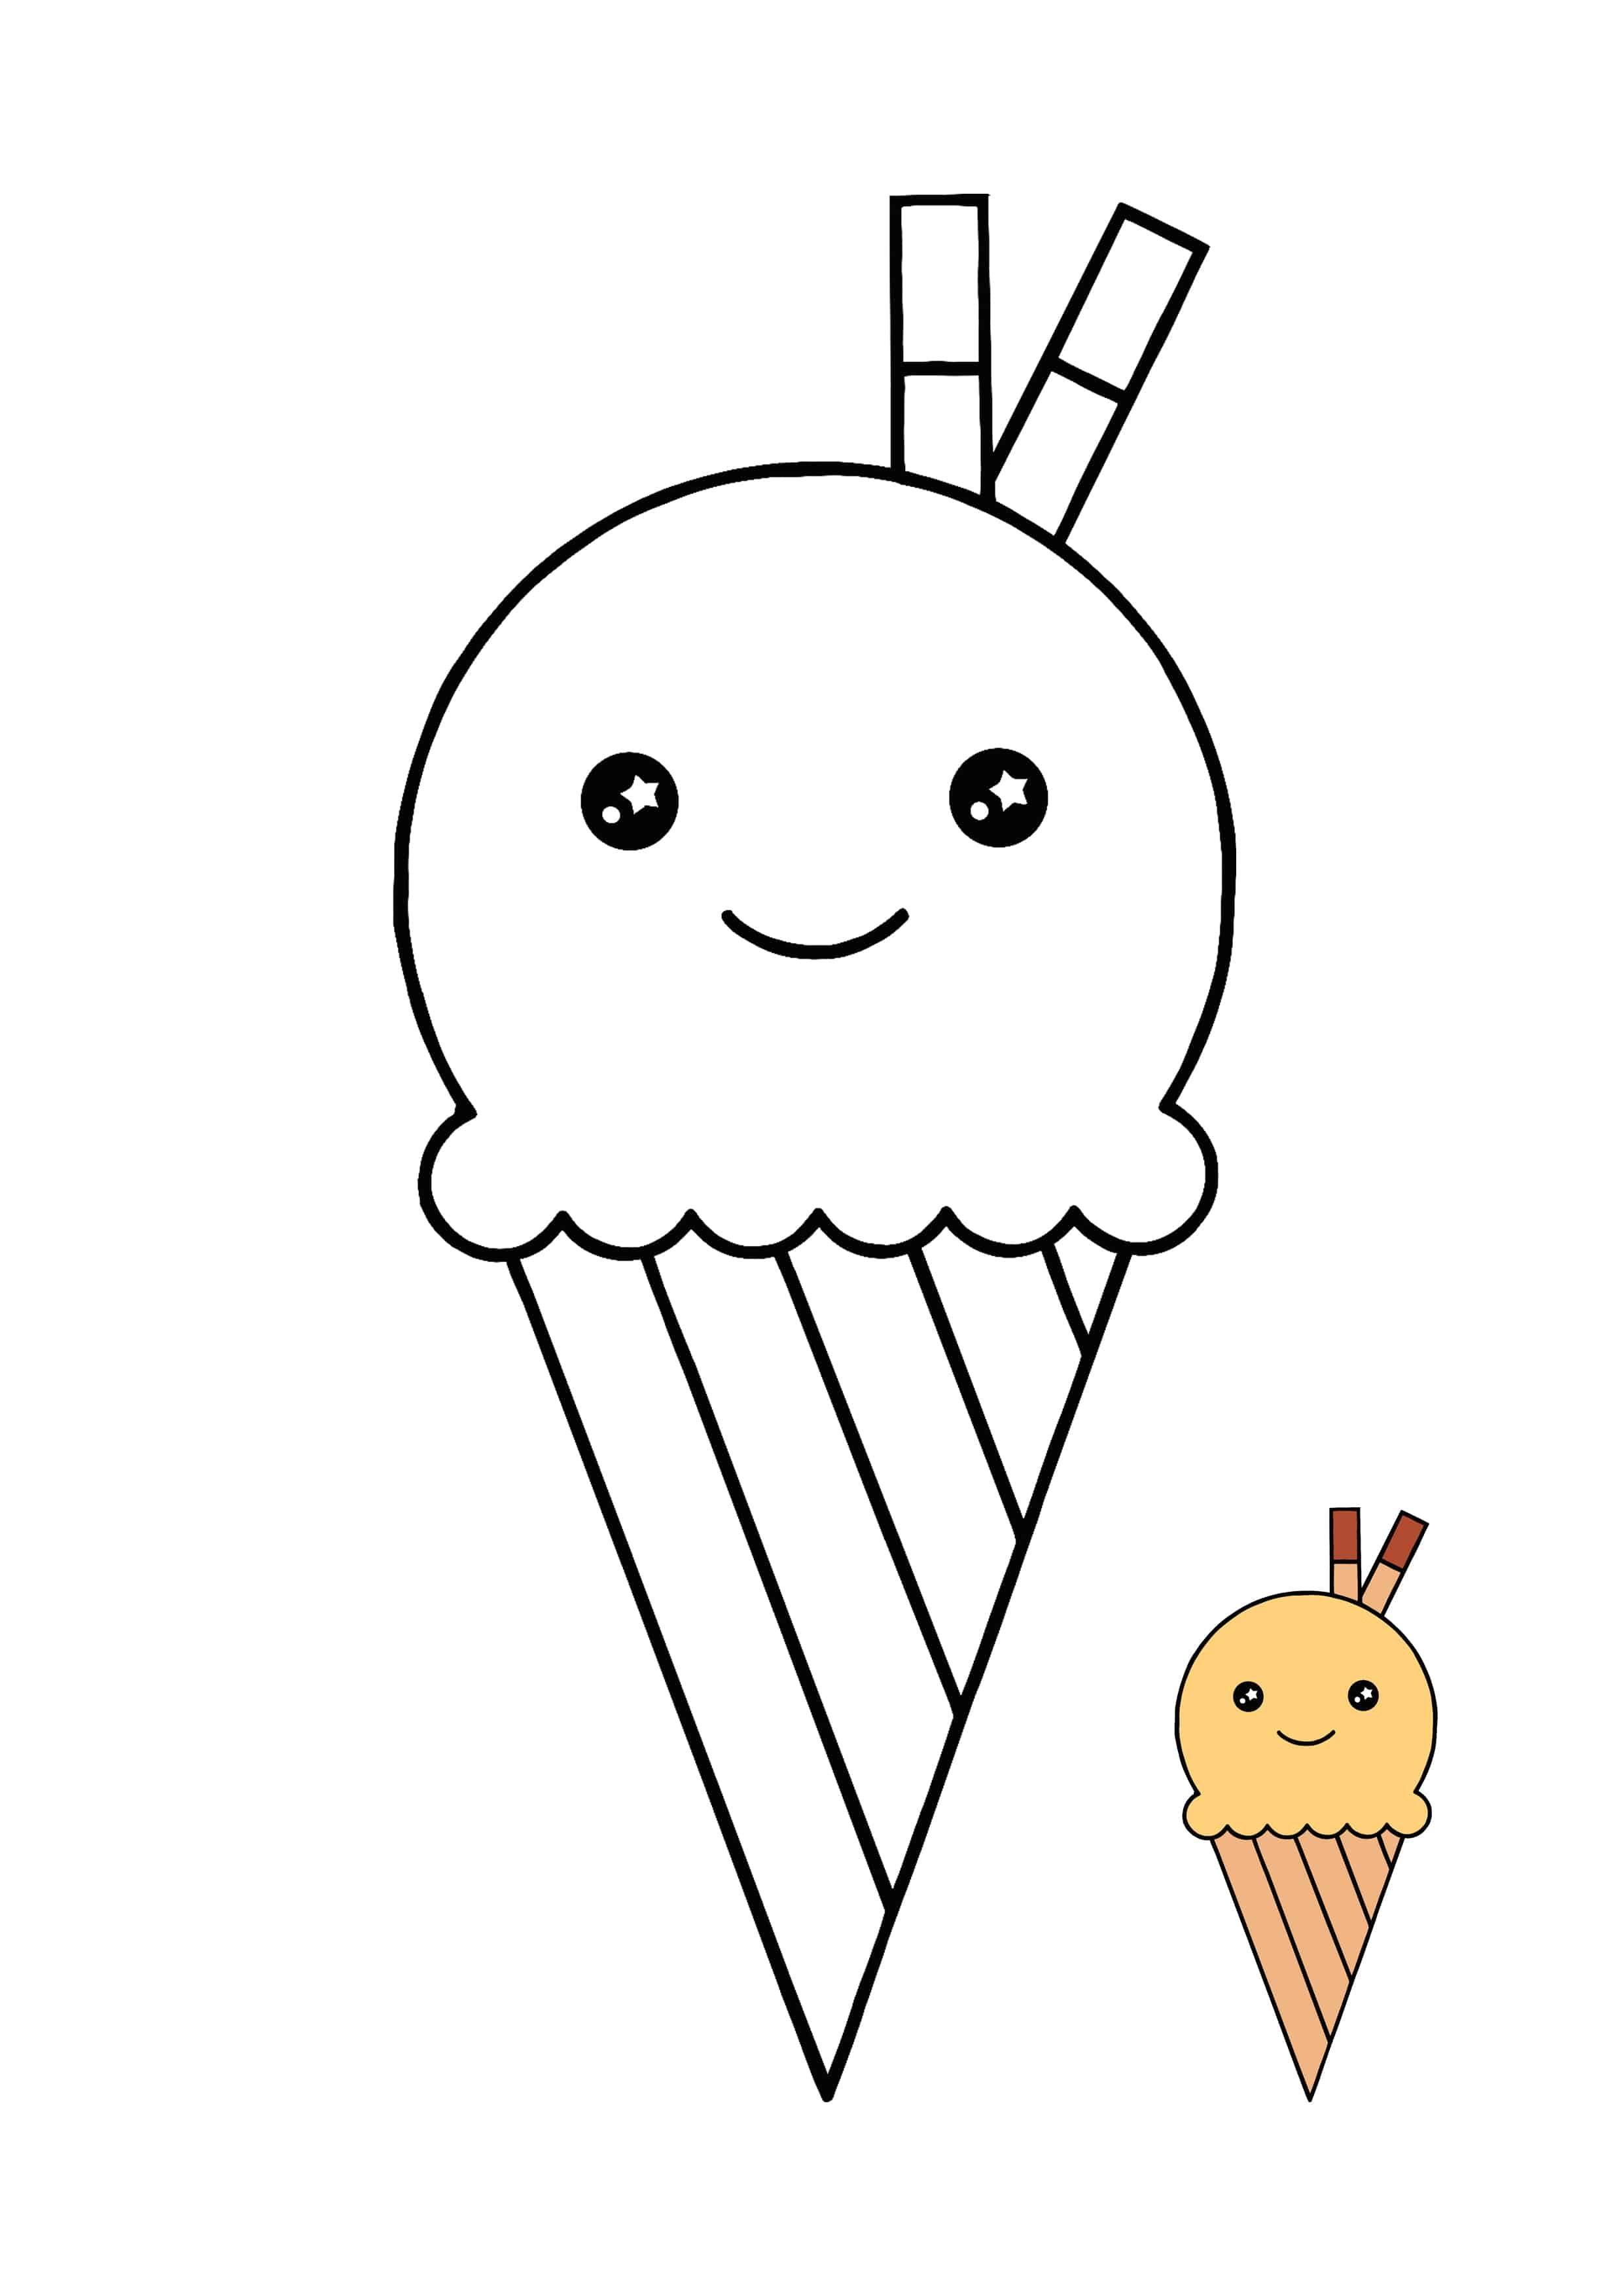 Kawaii Ice Cream Cool Coloring Page Cool Coloring Pages Ice Cream Coloring Pages Coloring Pages